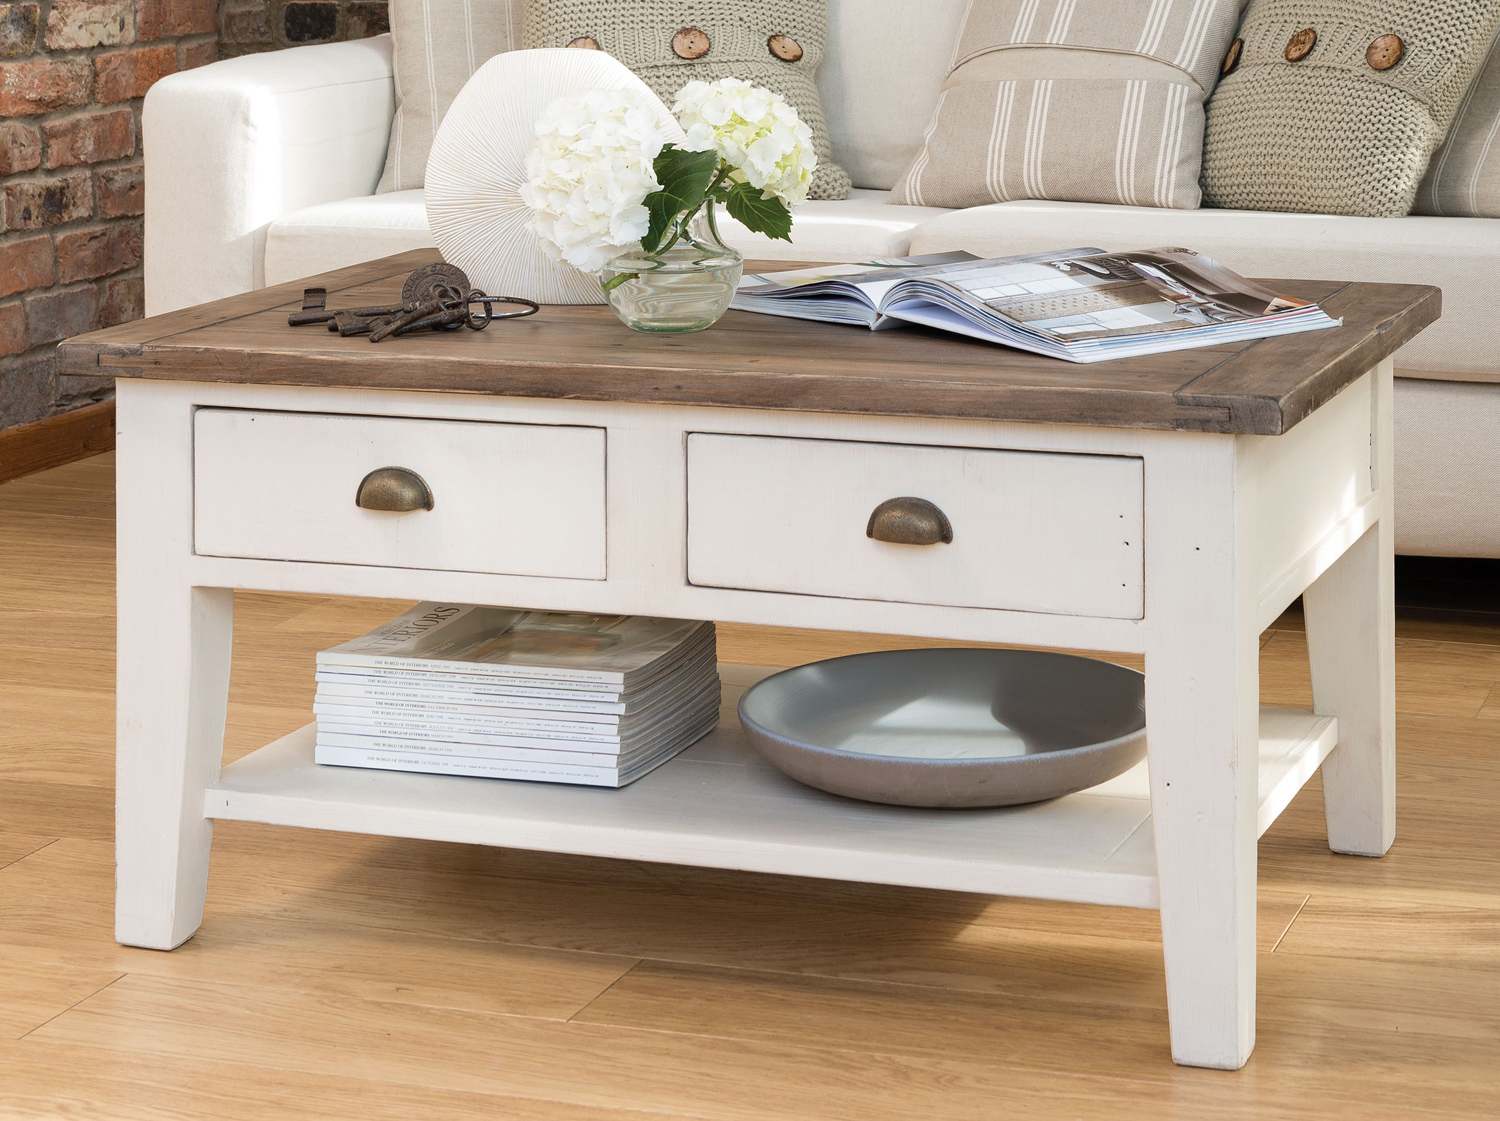 French Country Coffee Table With Two Drawers Image And Description